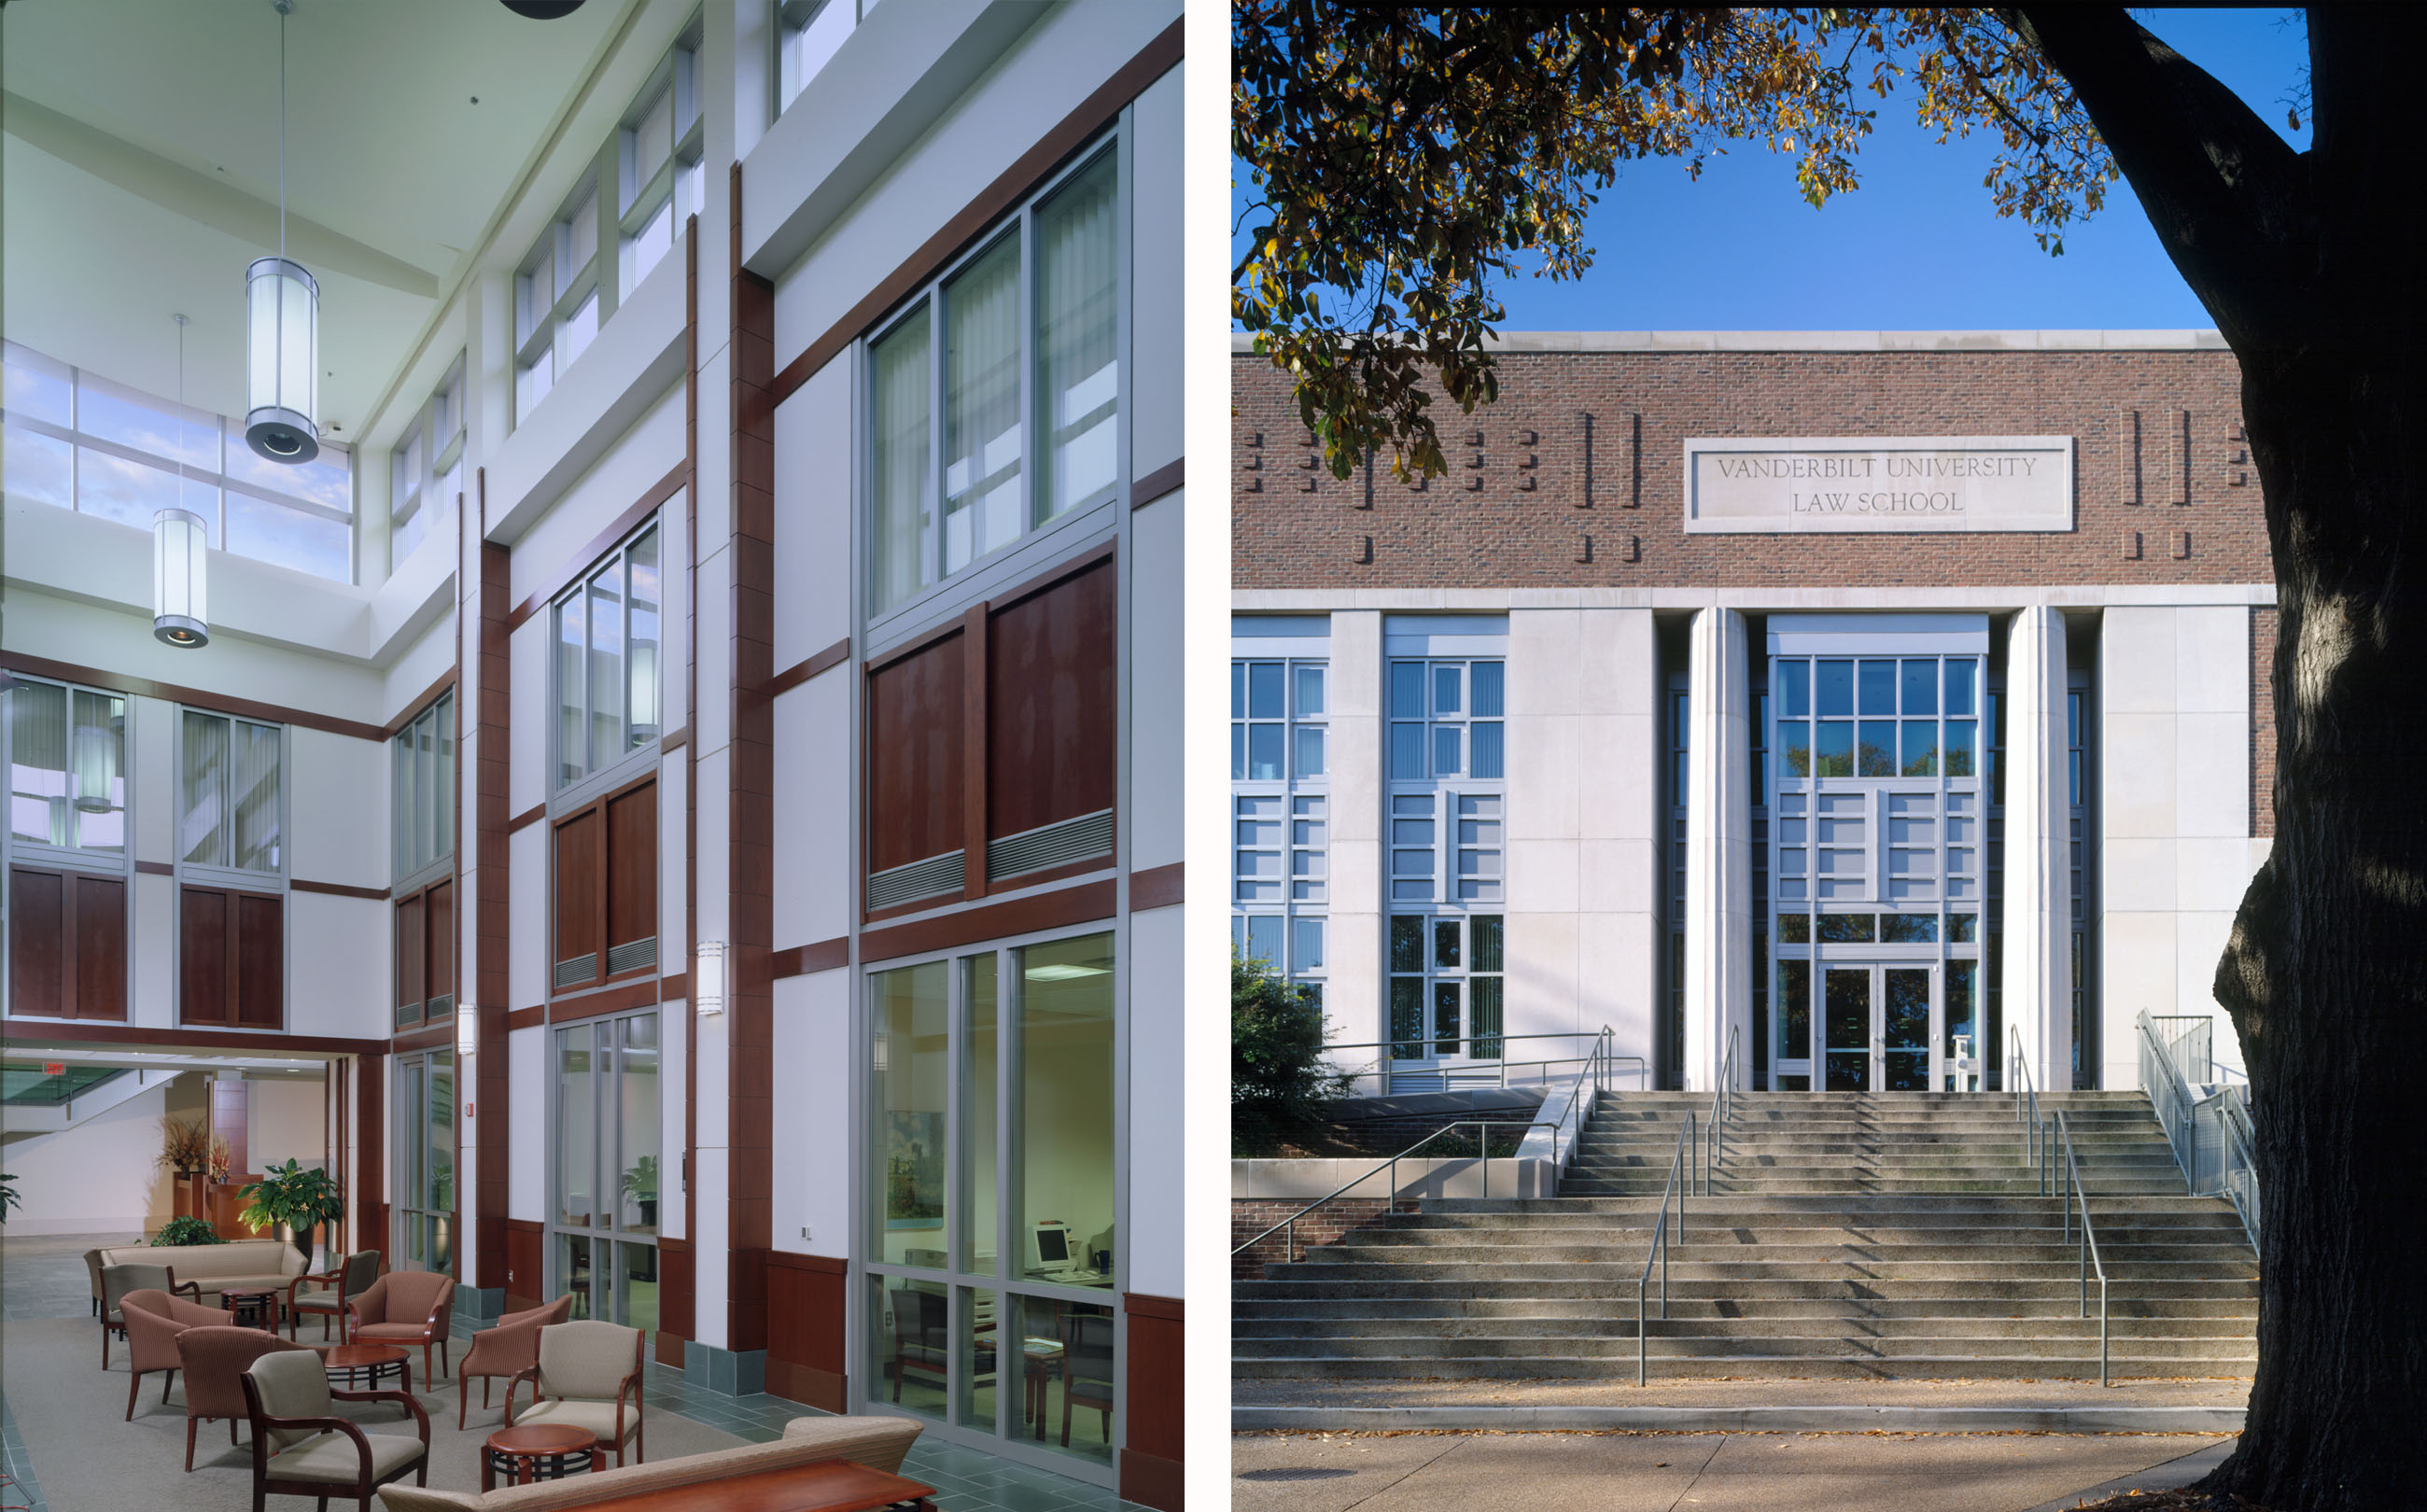 School of law at vanderbilt university bauer askew - Interior design school nashville ...